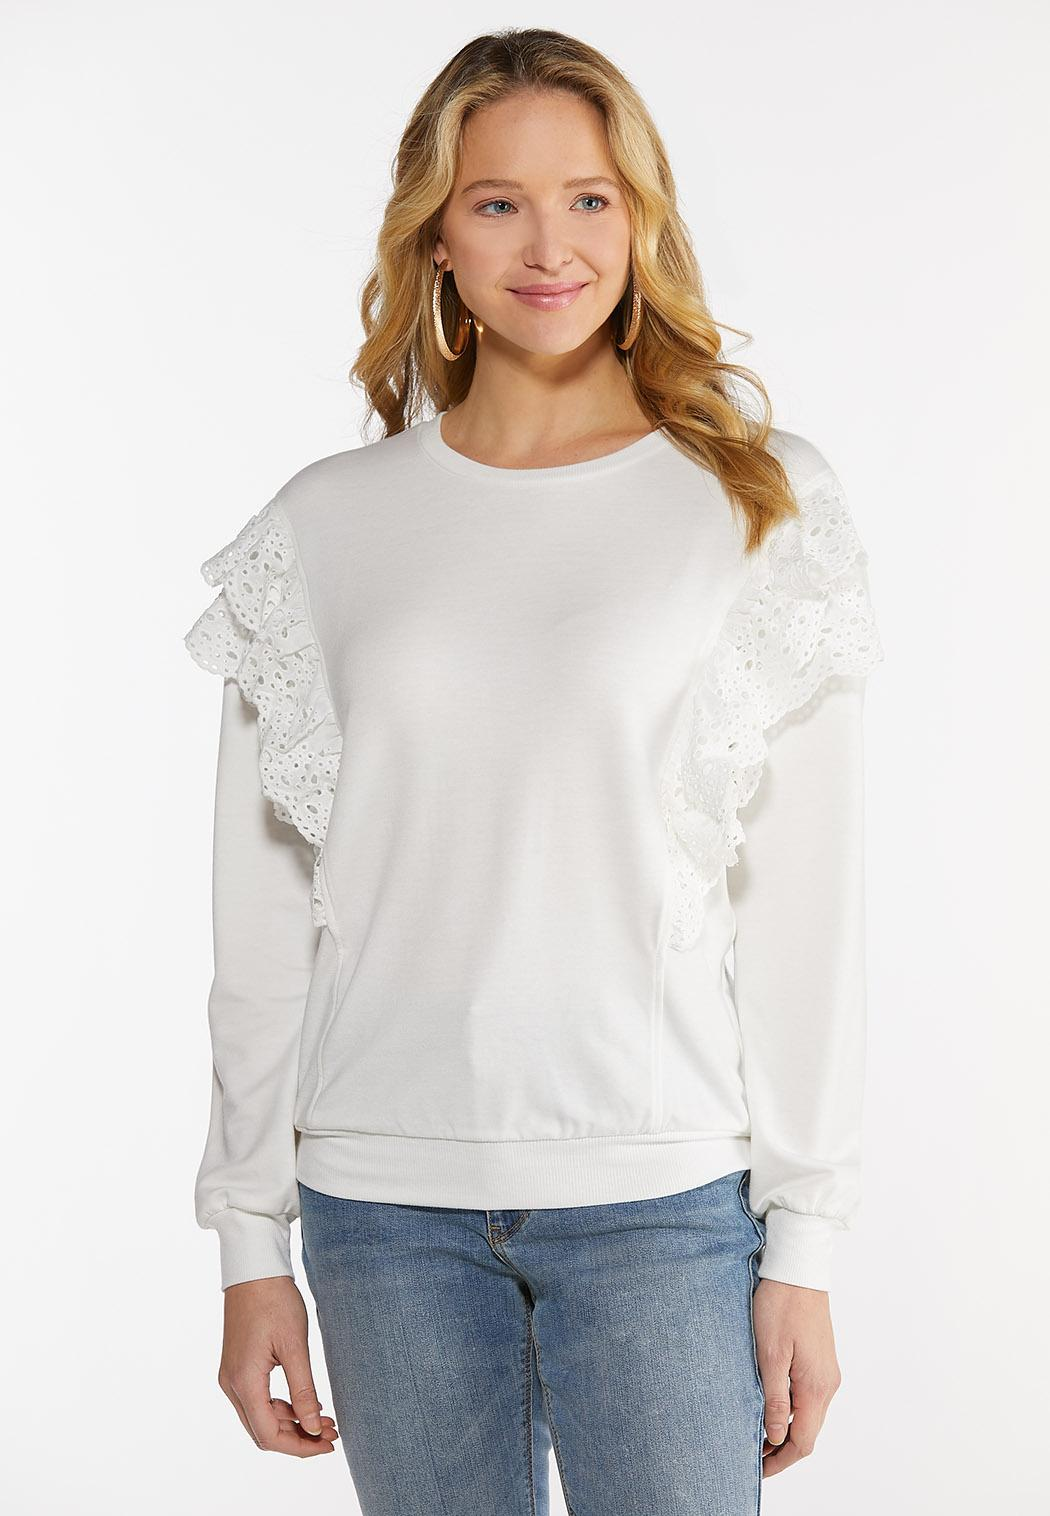 Eyelet Lace Trim Sweatshirt